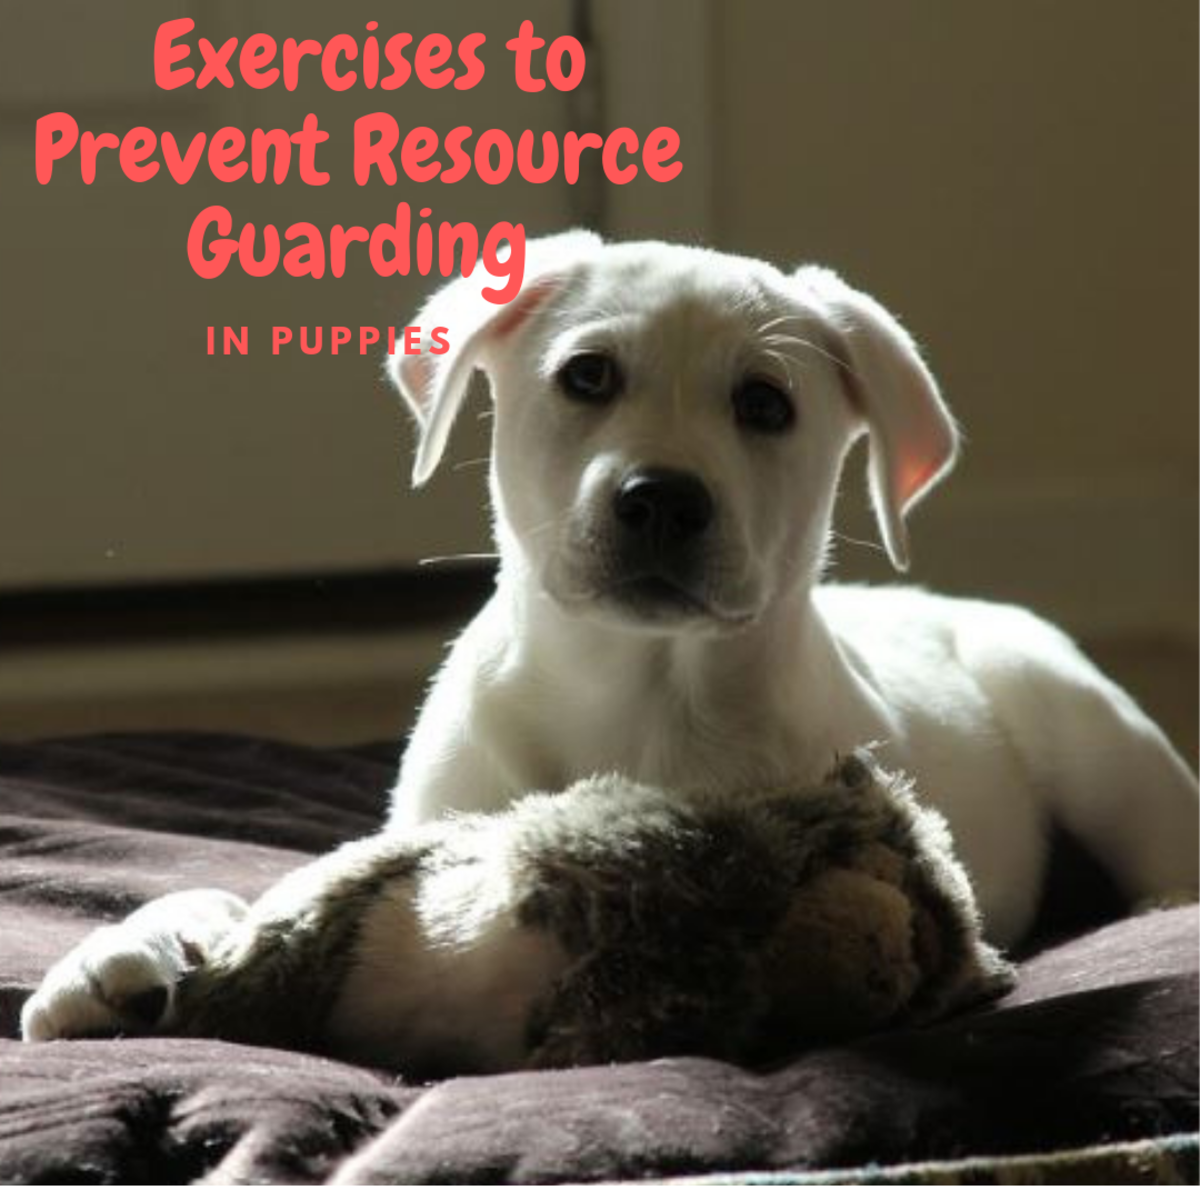 Exercises for Preventing Resource Guarding in Puppies